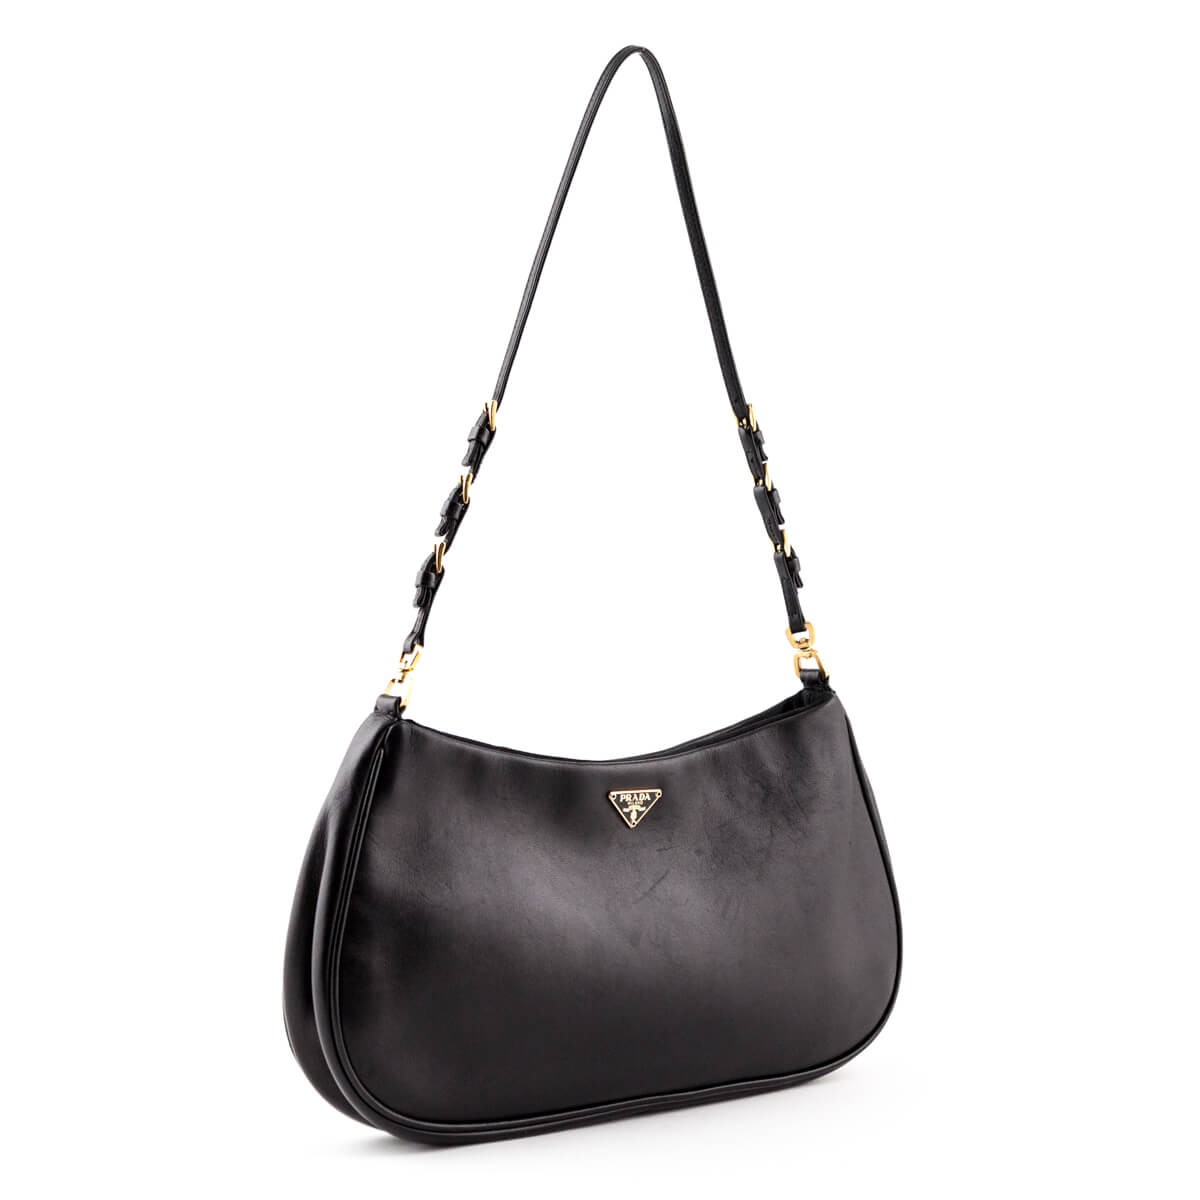 deecac2335cd ... Prada Black Vitello Daino Small Shoulder bag - LOVE that BAG - Preowned Authentic  Designer Handbags ...